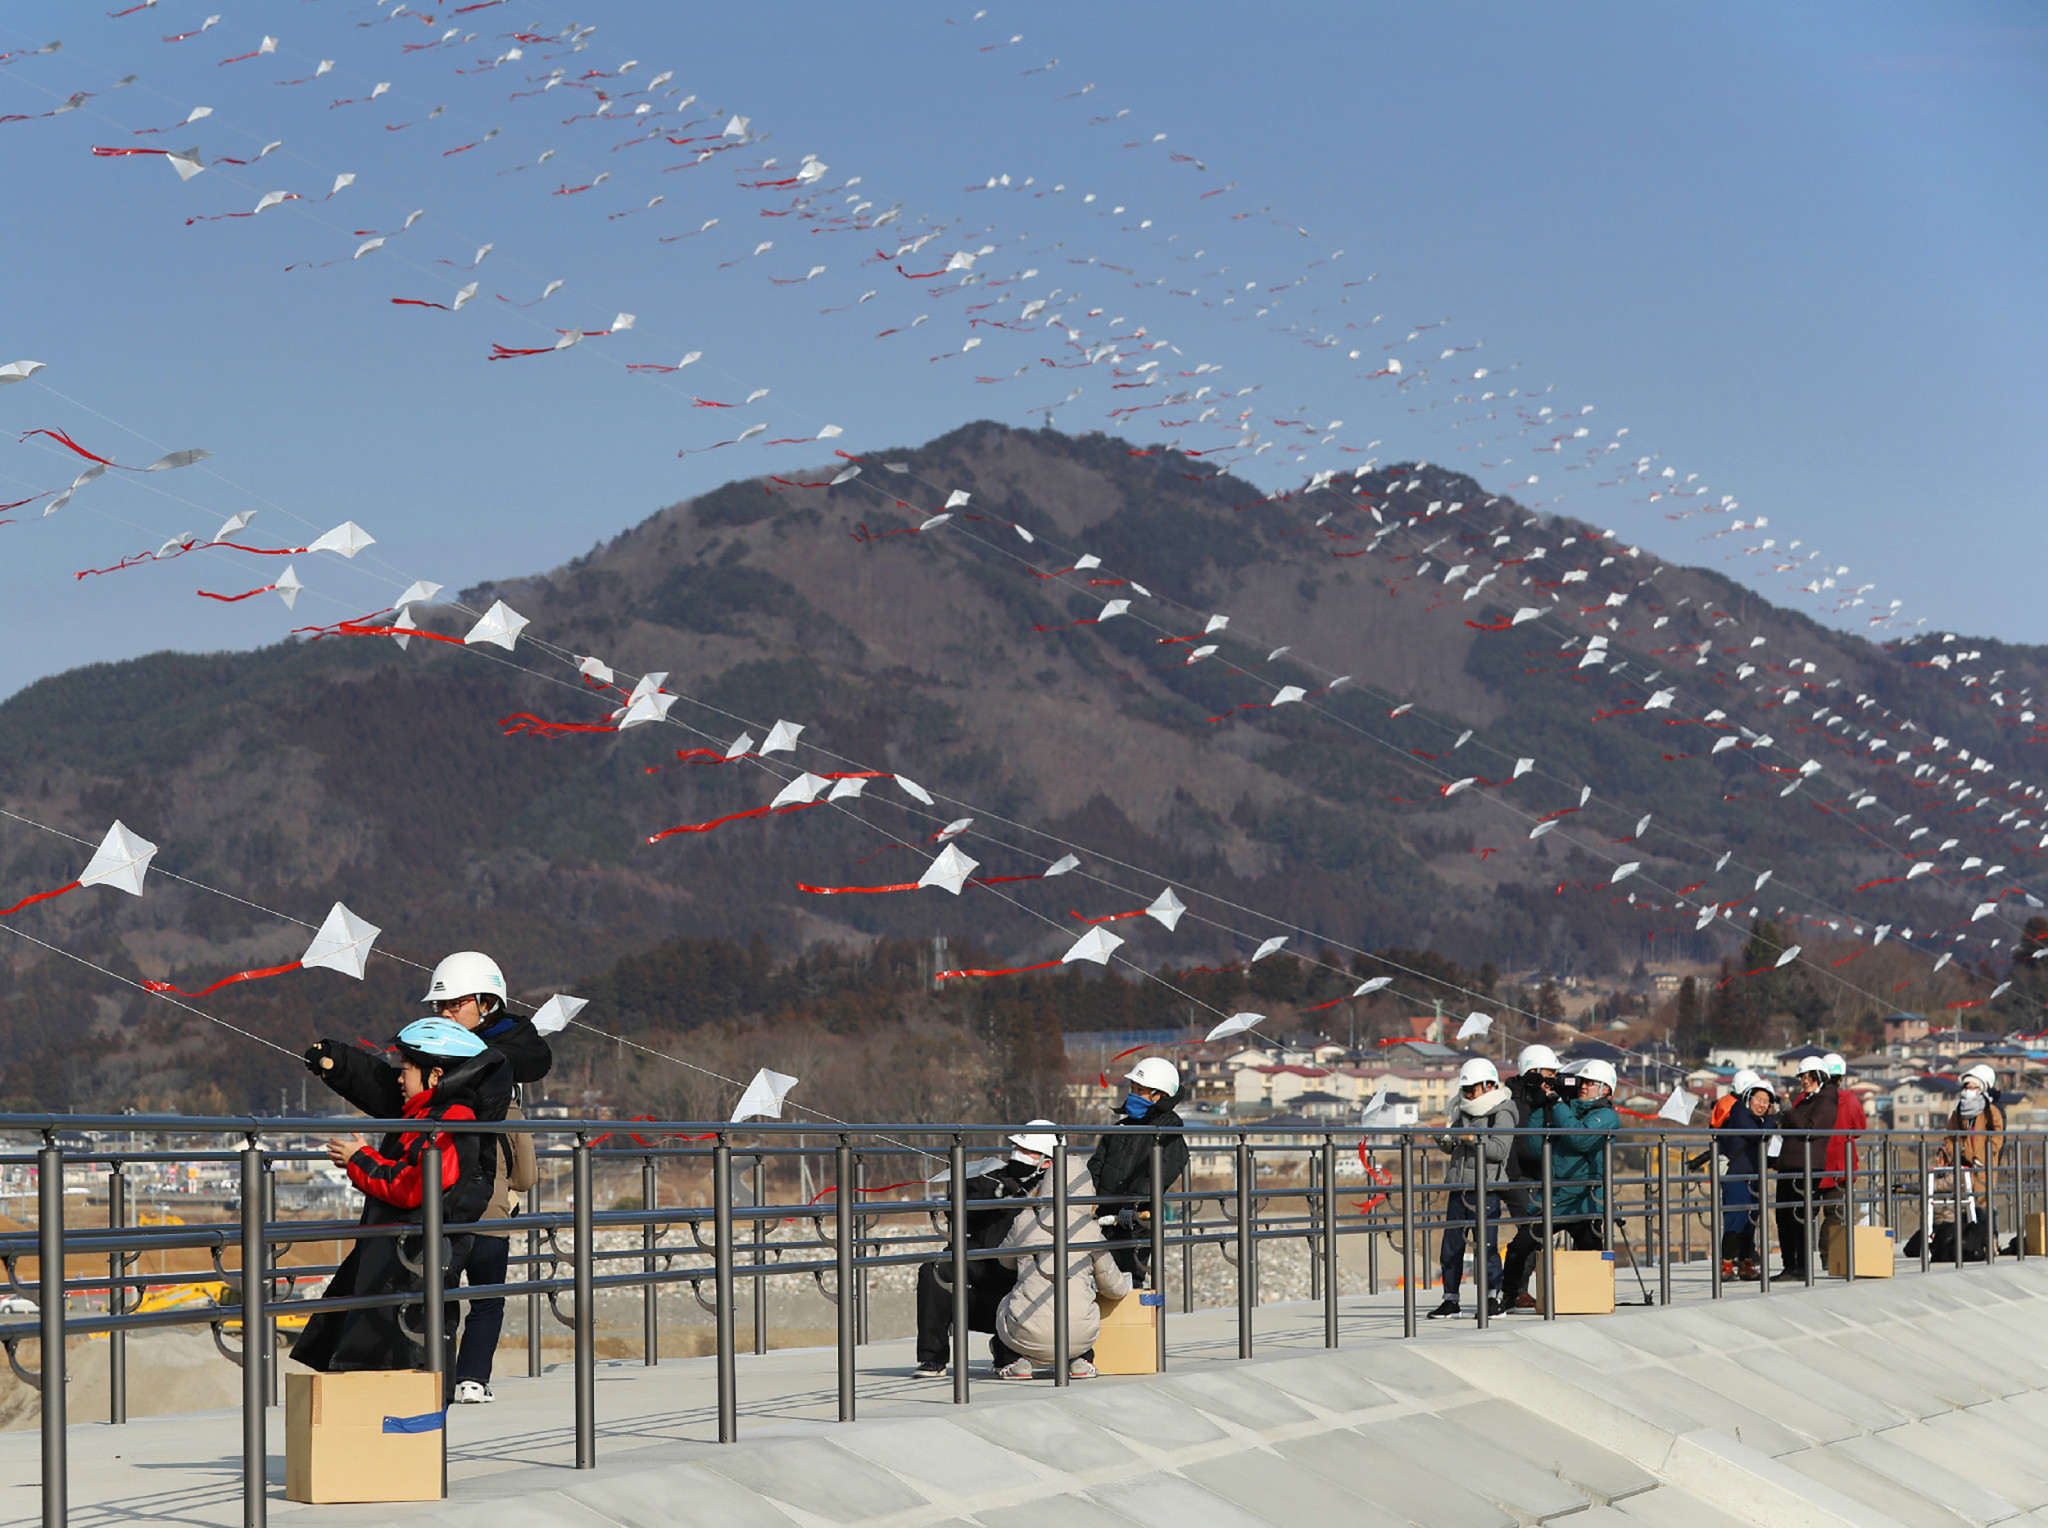 Residents of Rikuzentakata in Iwate fly kites with numbers of the city's victims in the 2011 tsunami and earthquake disaster ©Getty Images